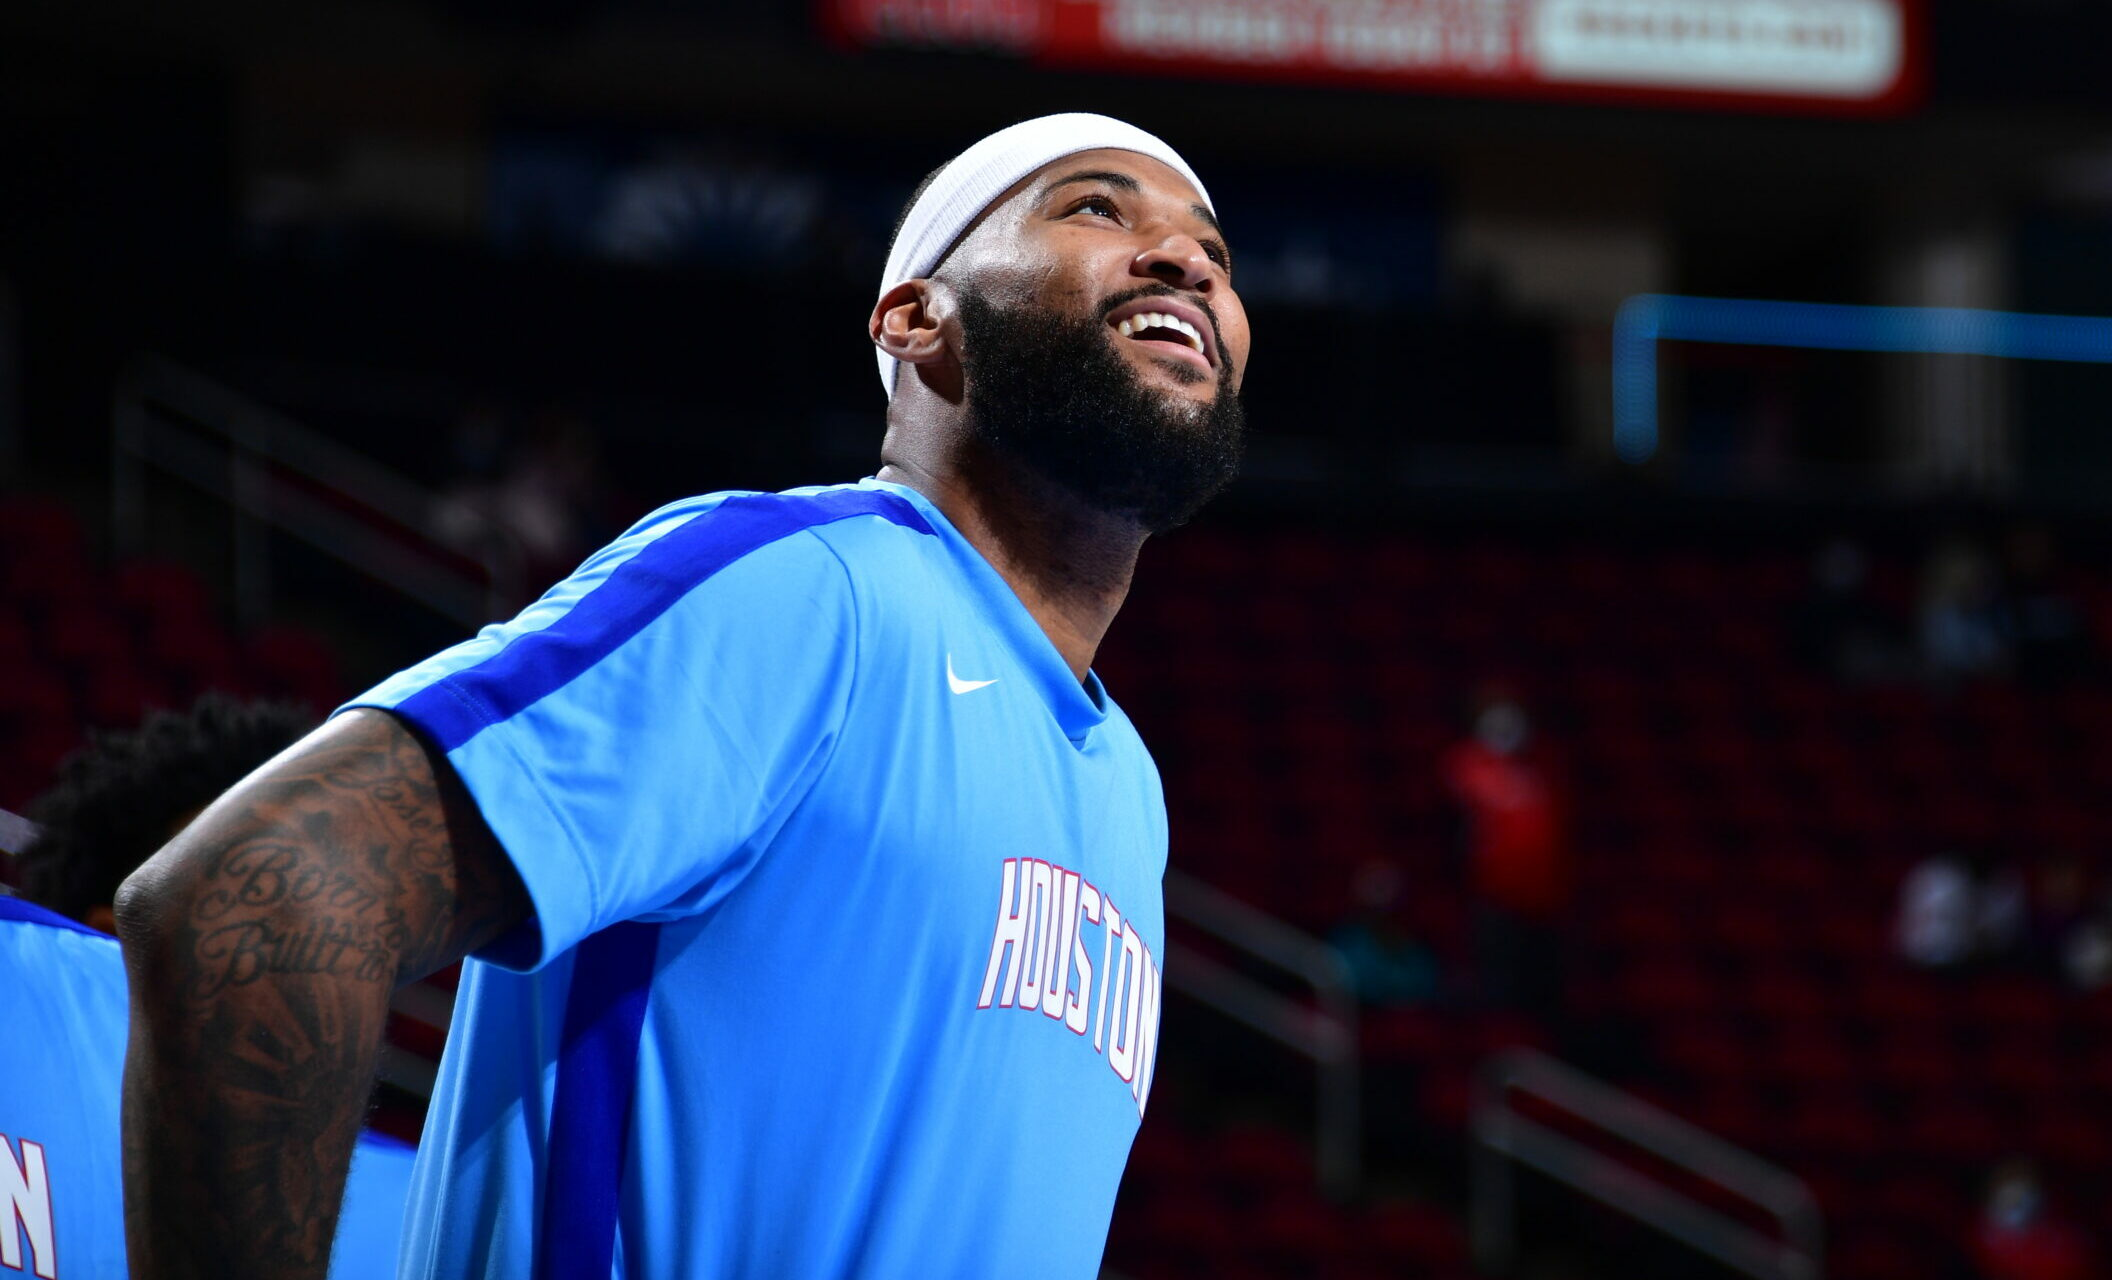 Clippers sign DeMarcus Cousins to 10-day contract